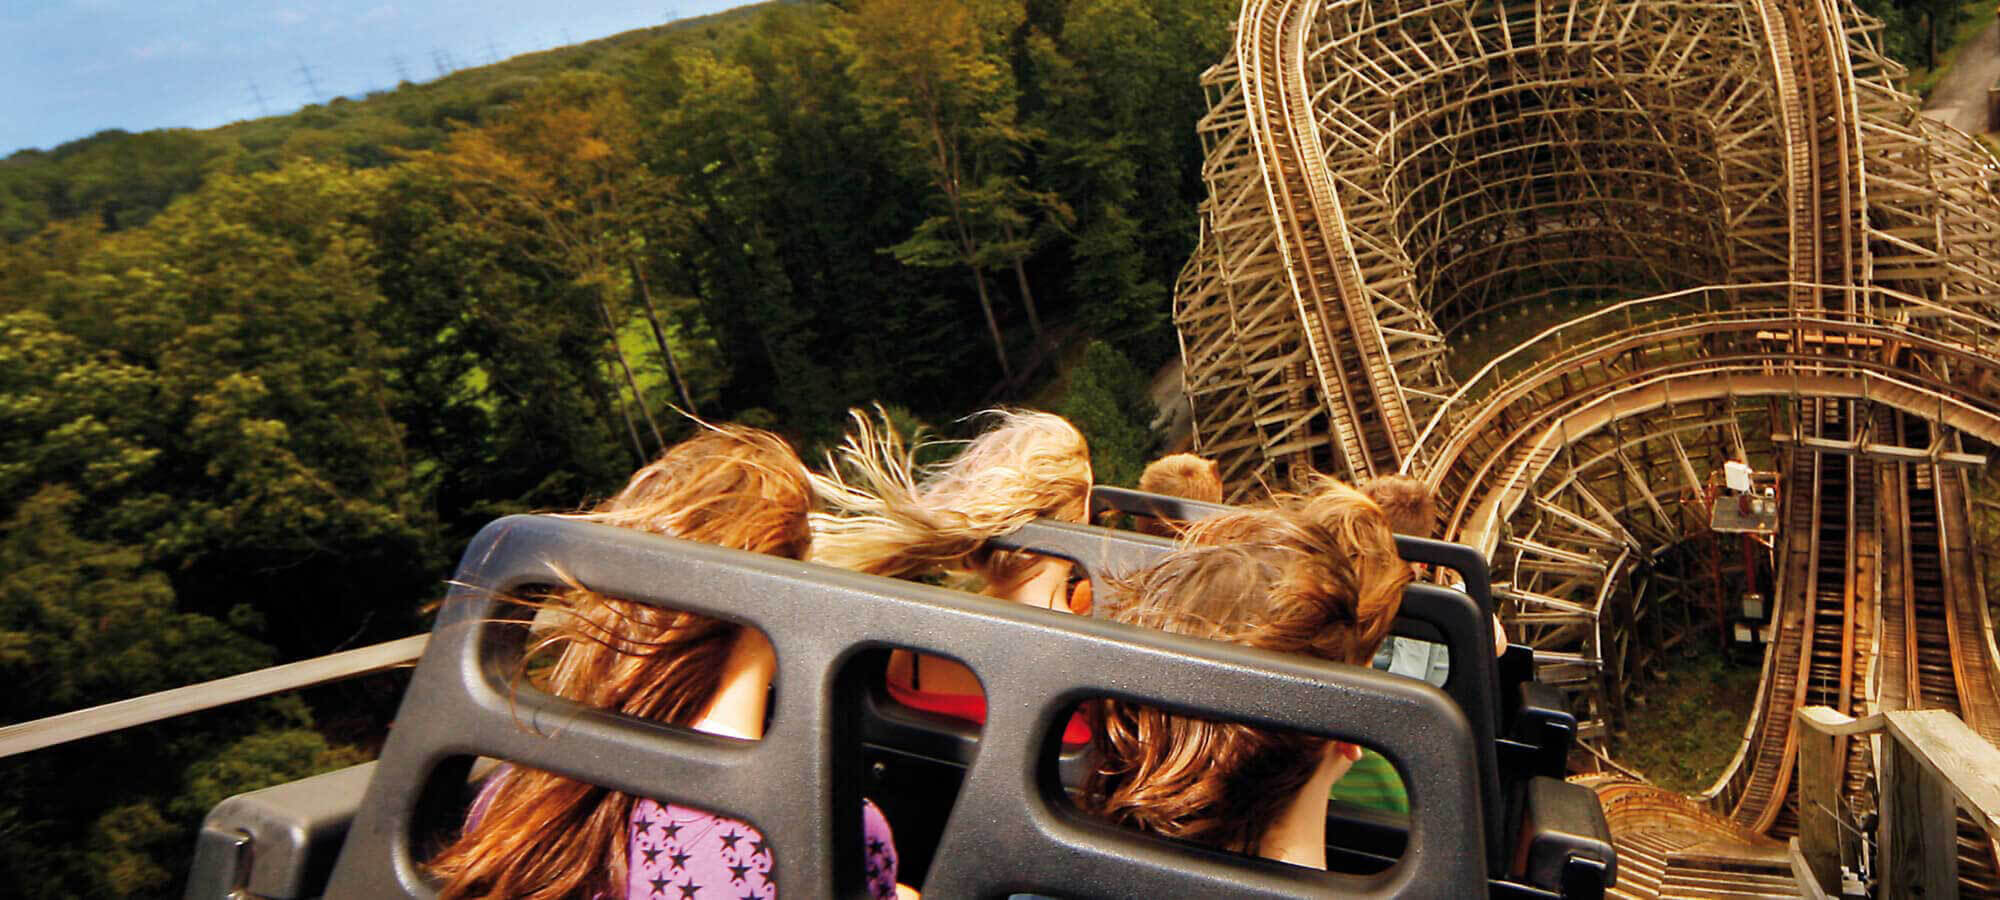 Movie Park Germany: The Bandit